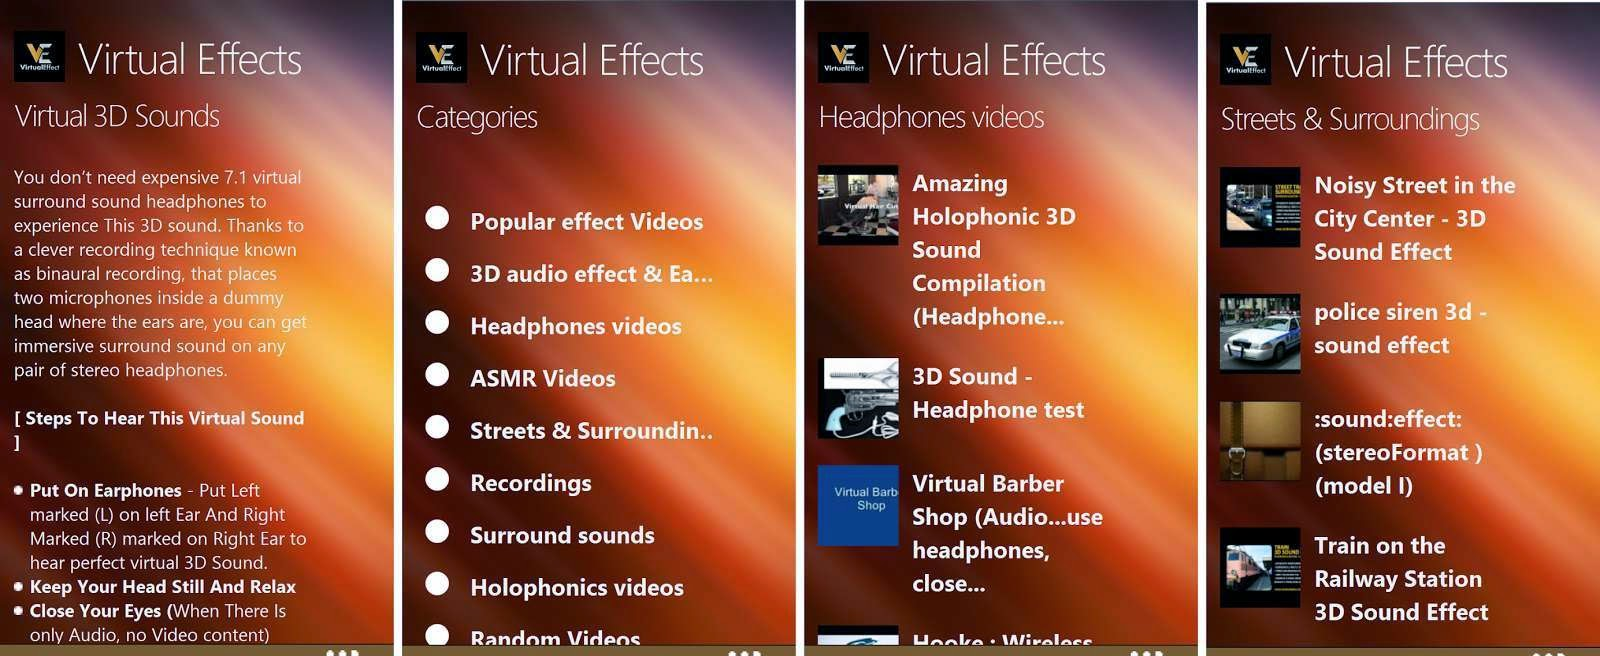 Virtual Effects - 3D Virtual Sound for Windows Phone